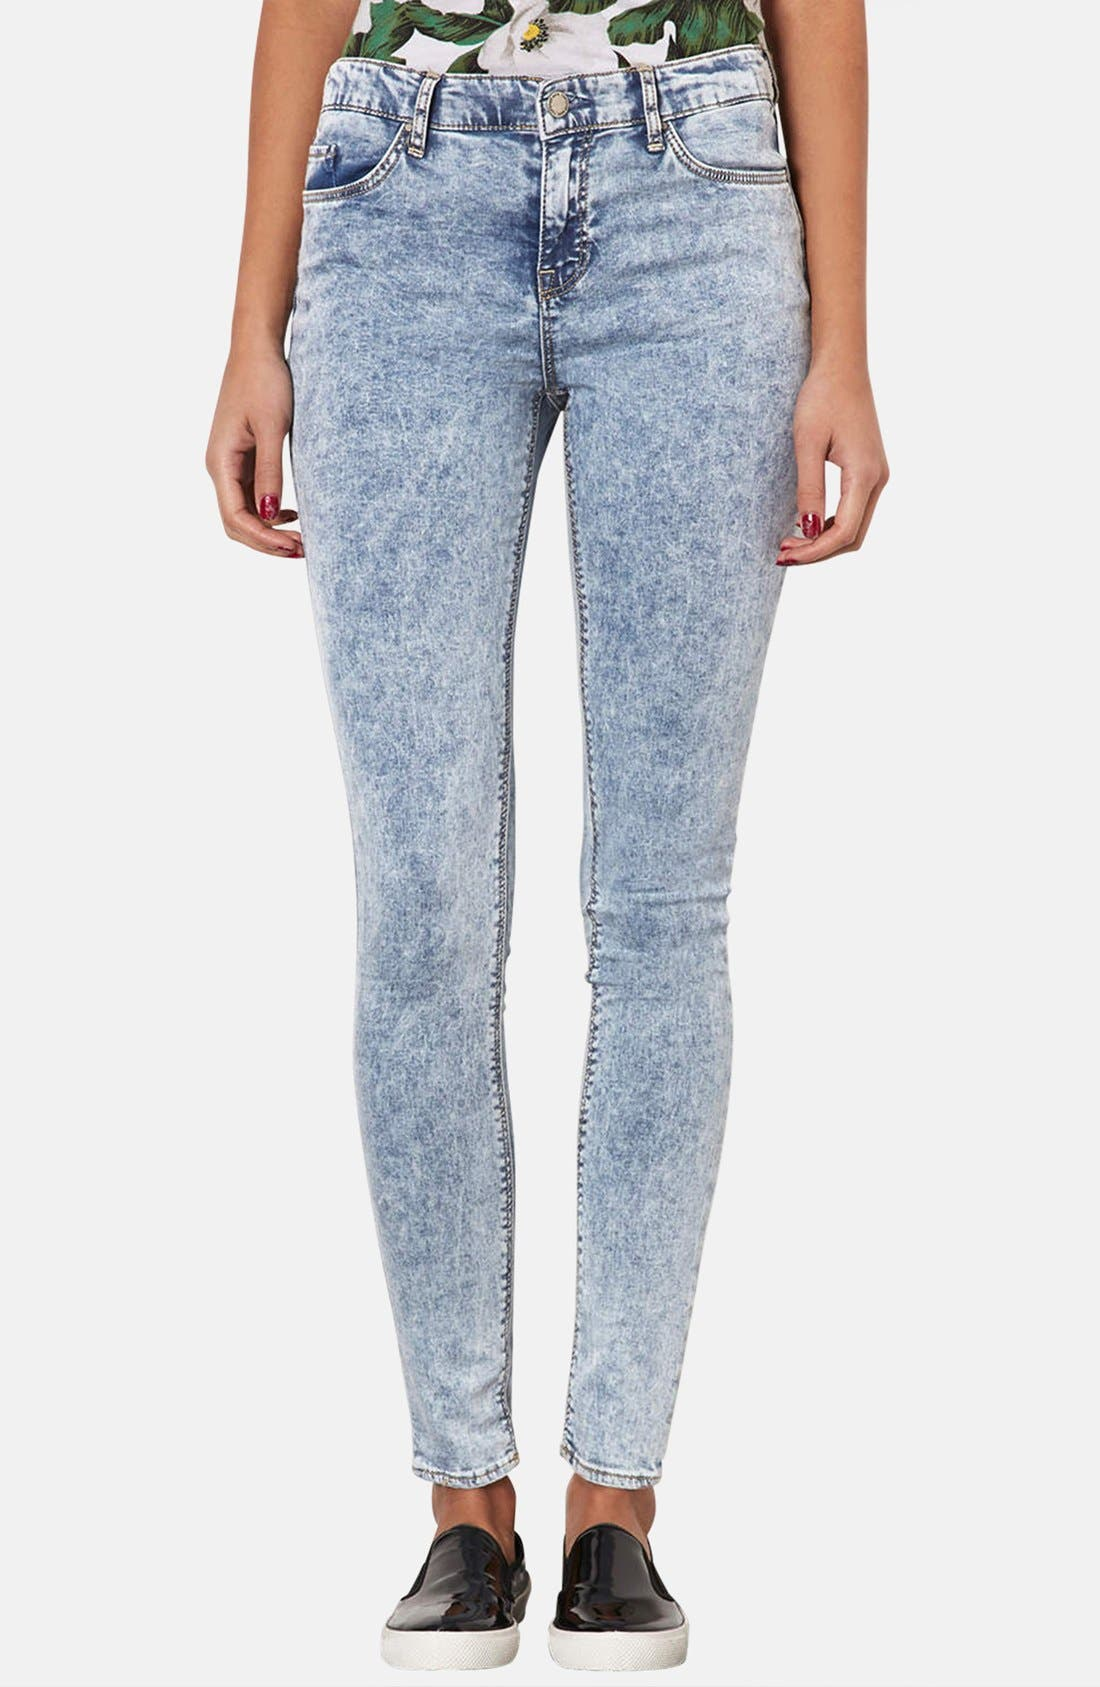 Main Image - Topshop Moto 'Leigh' Acid Wash Skinny Jeans (Mid Stone) (Regular & Short)